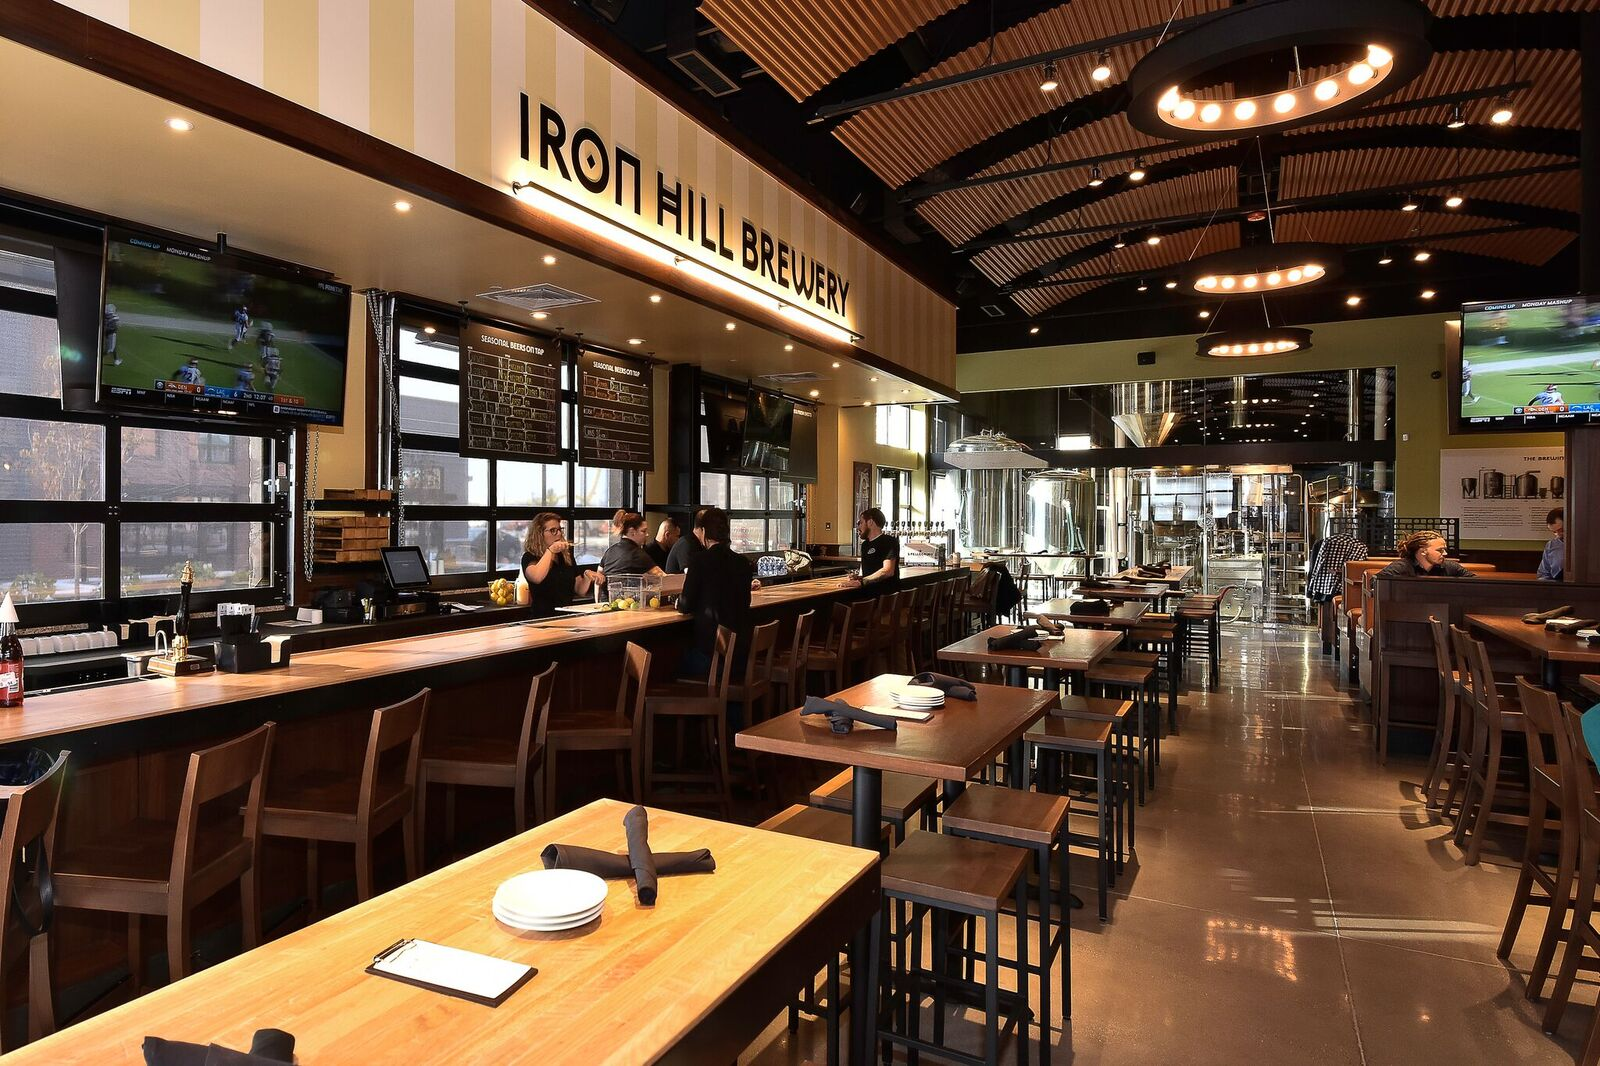 Iron Hill Brewery Opens 16th Location In Hershey Pa